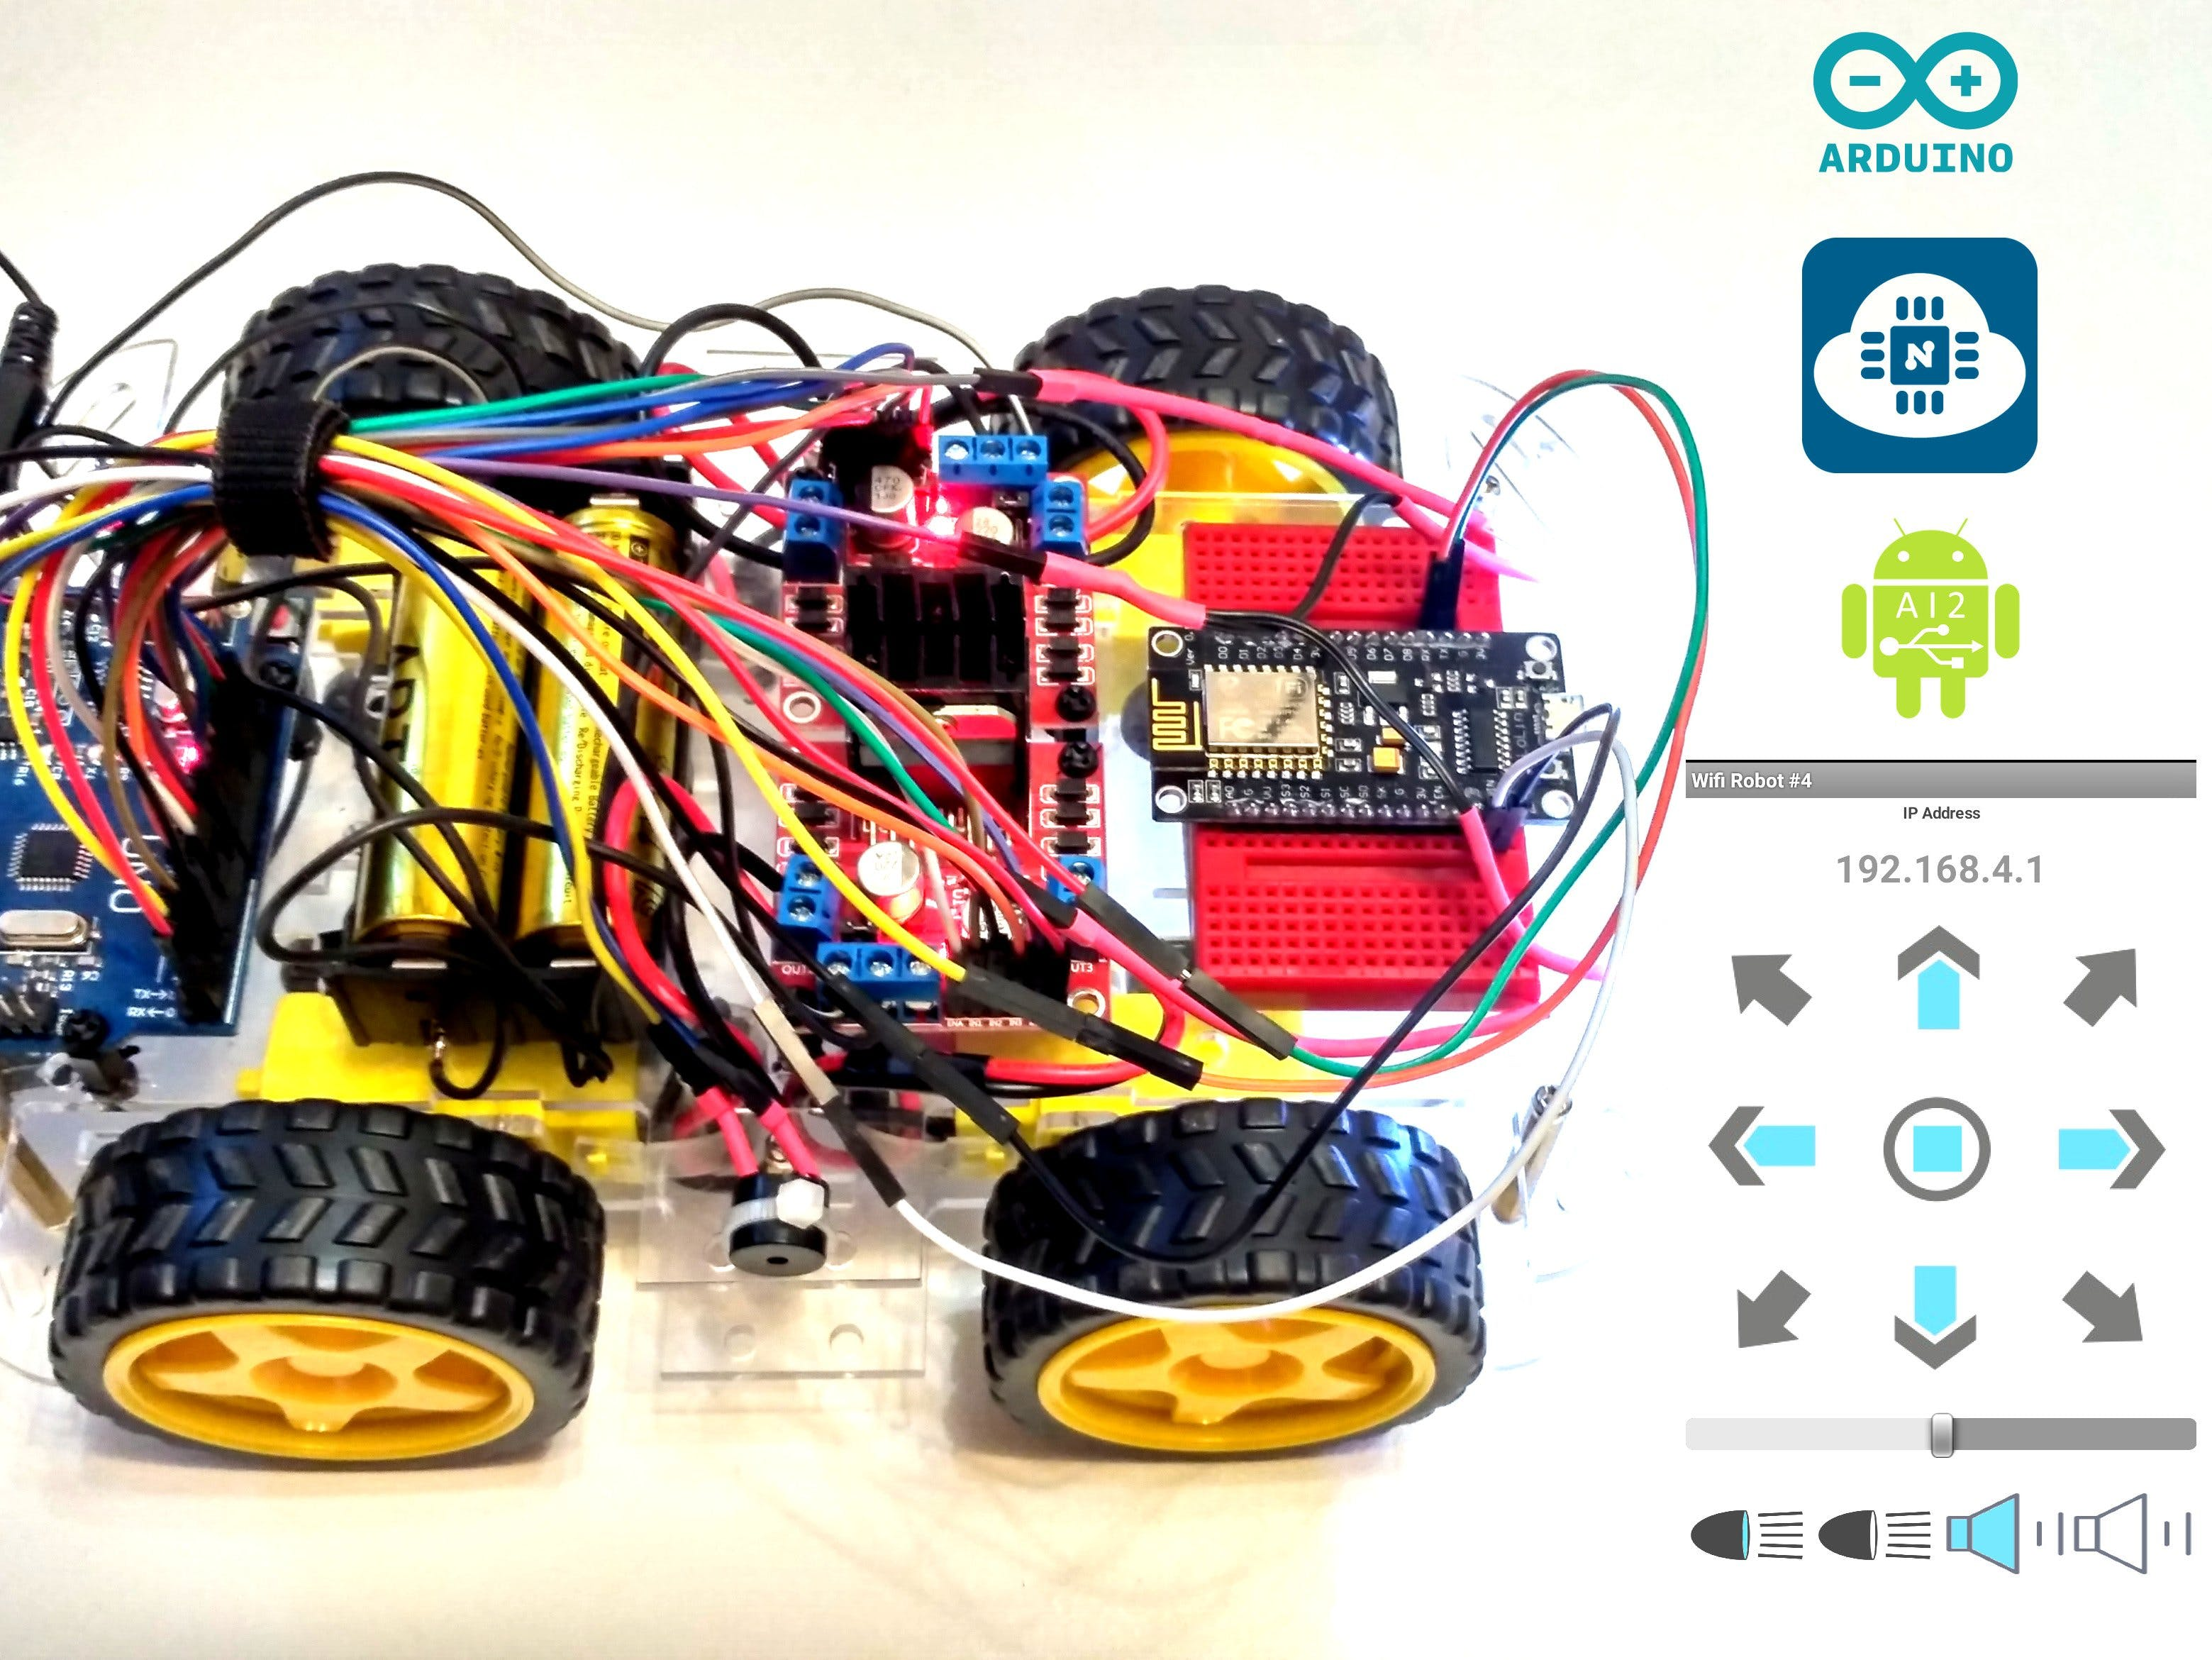 From BT To WiFi: Creating WiFi Controlled Arduino Robot Car